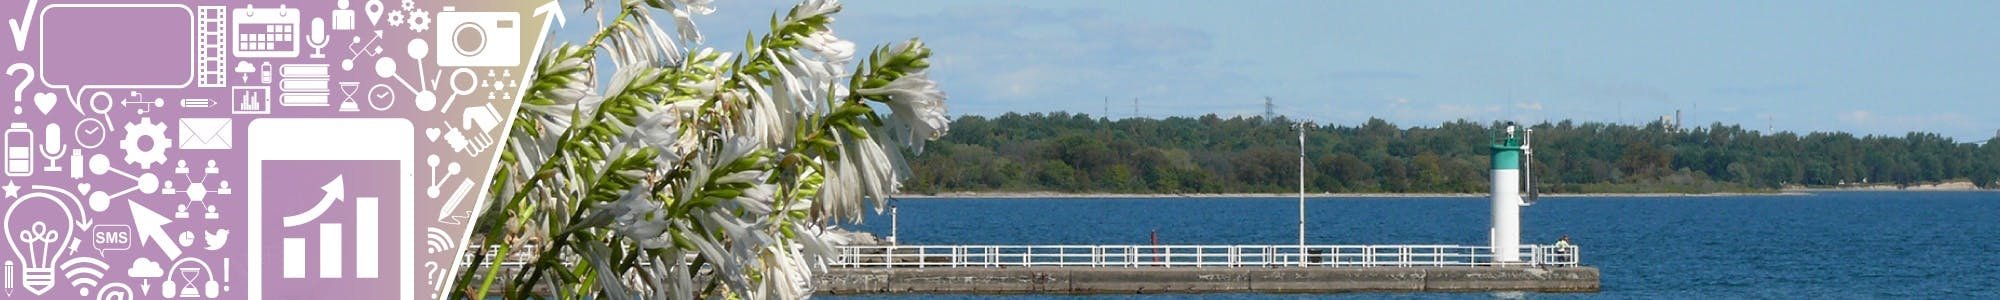 Oshawa pier photo taken from the waterfront through greenery and flowers